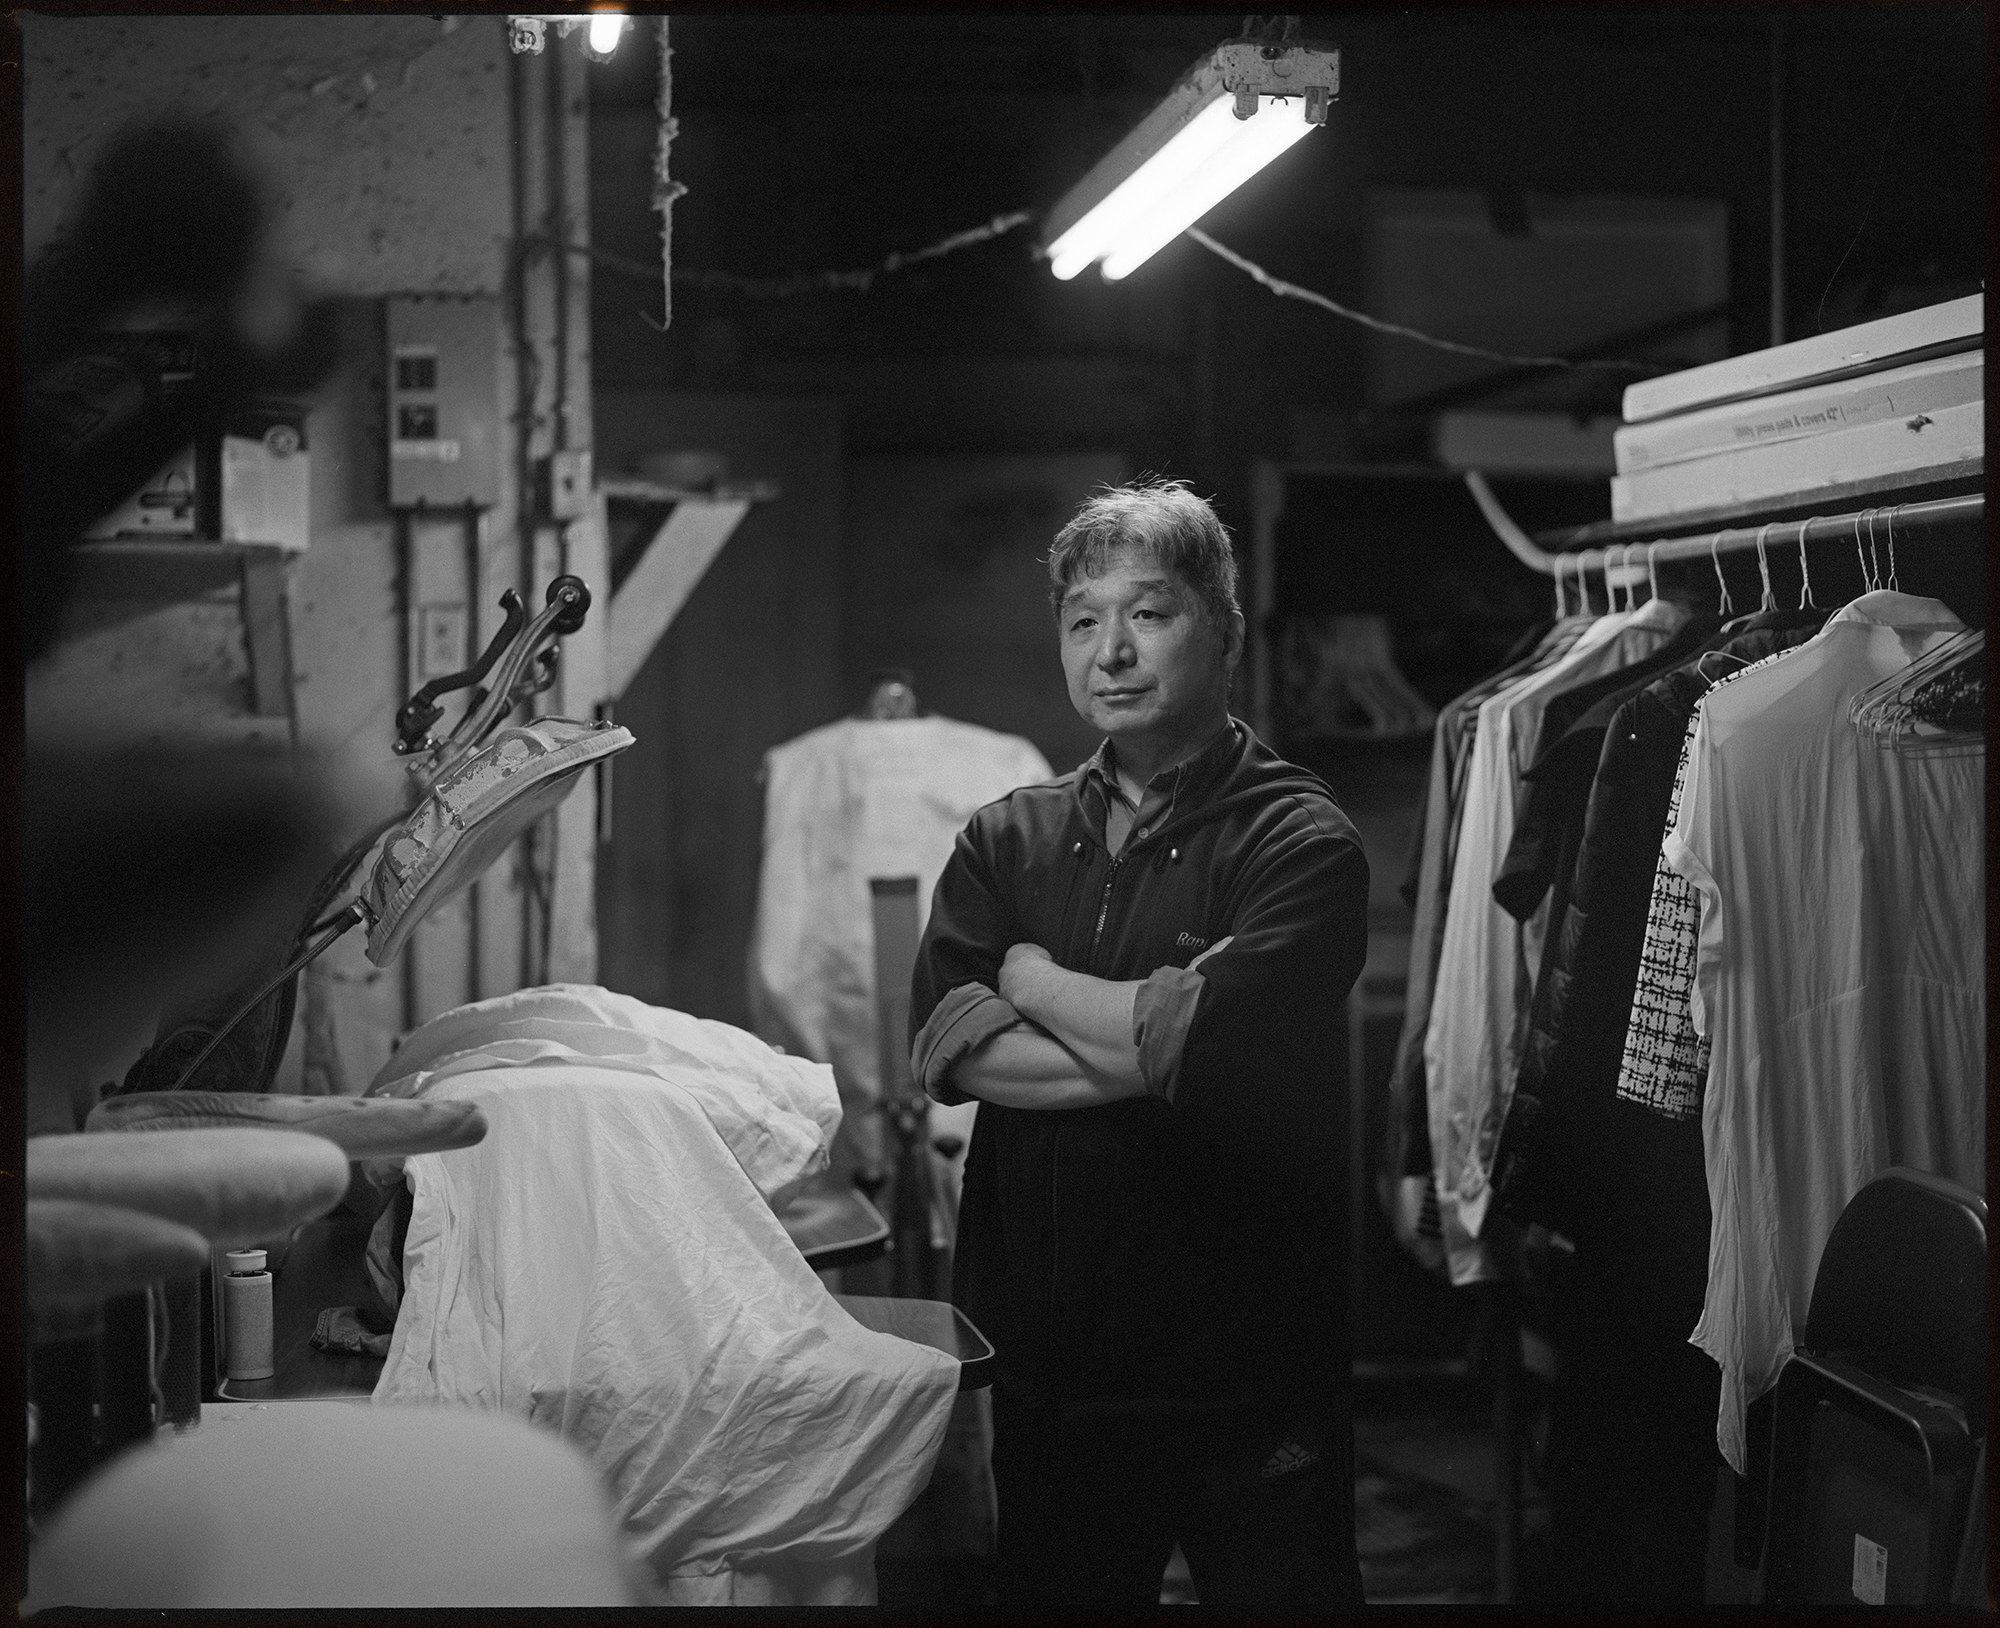 A man stands with his arms crossed in front of laundry machines under a fluorescent light